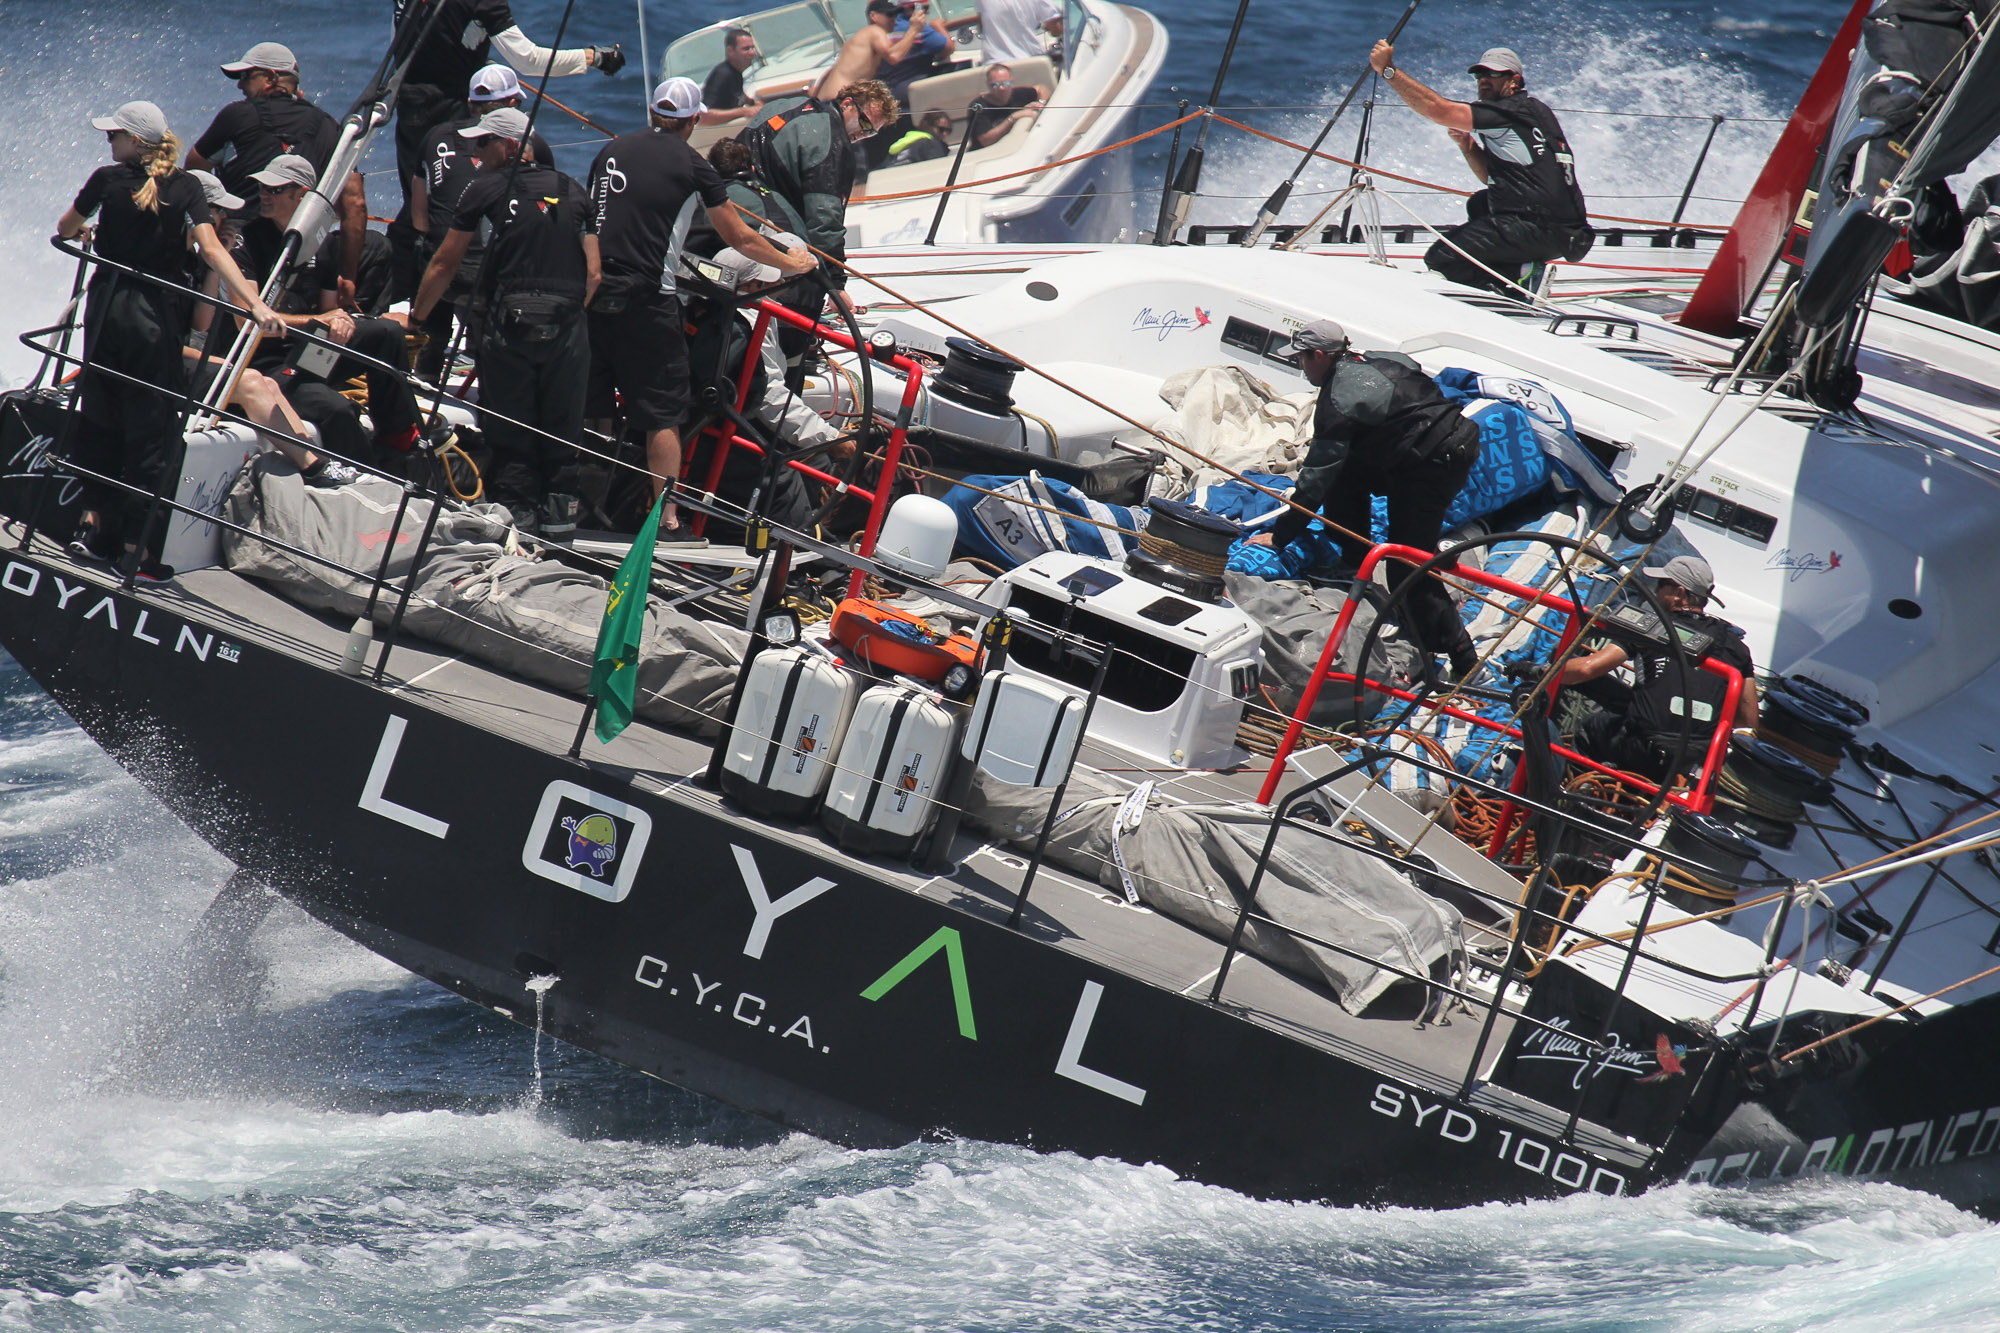 Loyal, Sydney To Hobart, Yacht Race